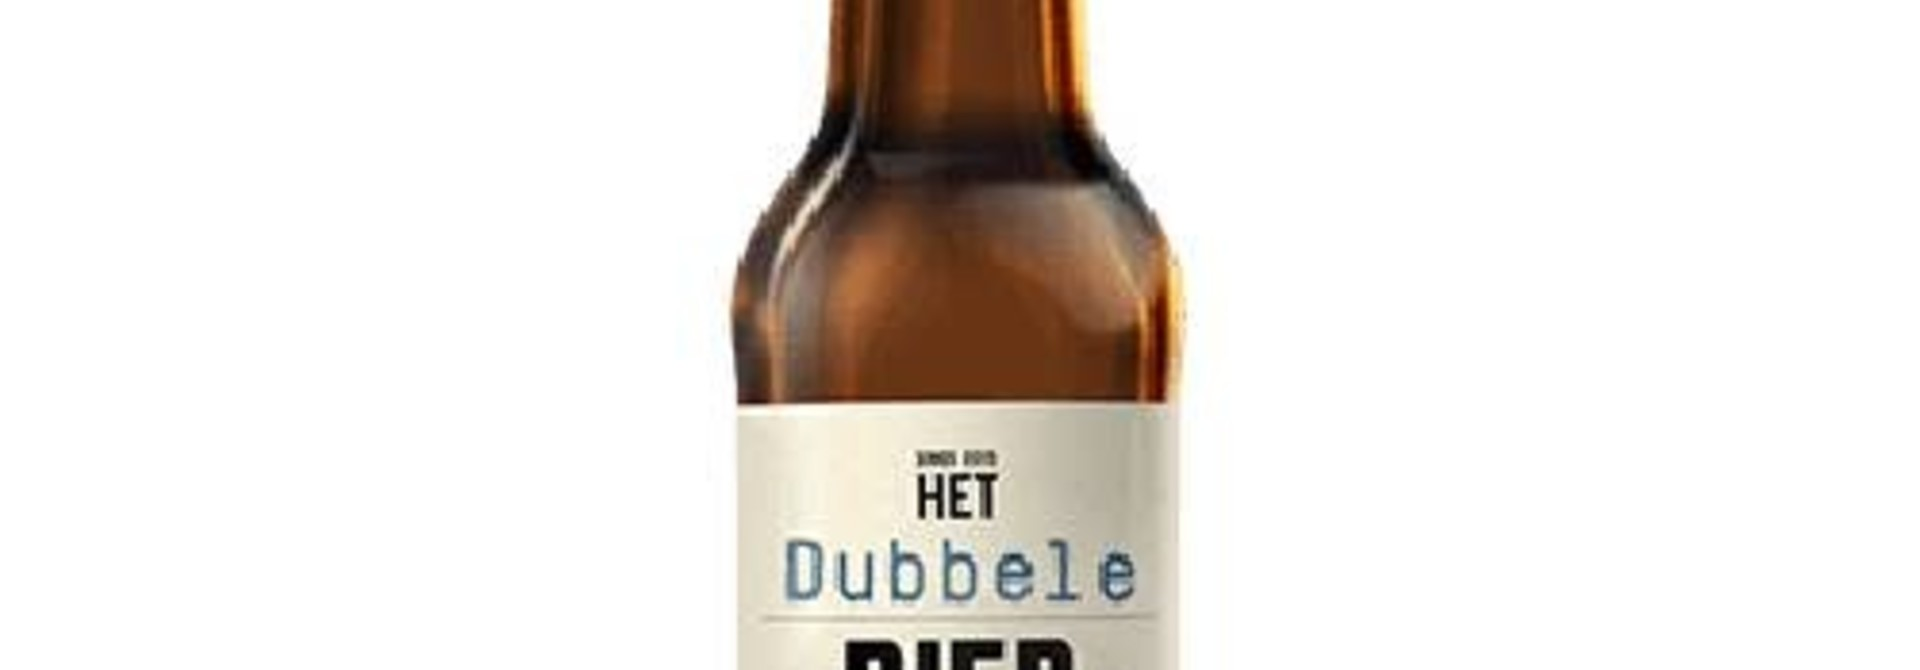 OIRSPRONG - DUBBEL 33CL